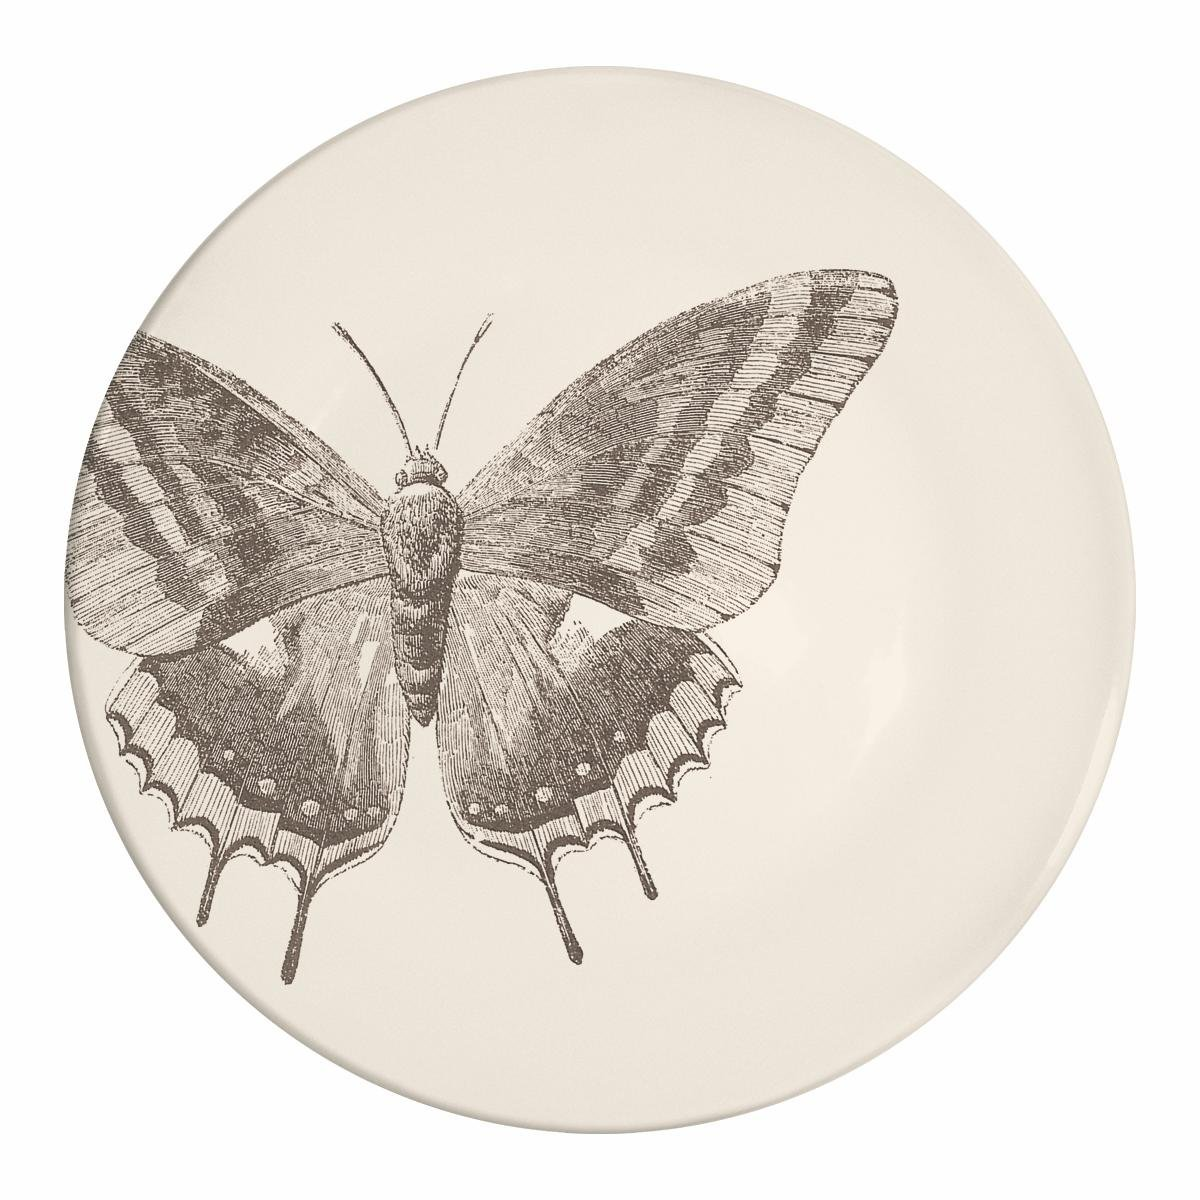 Paperproducts Design Botanical Collection Stoneware Plate with Butterfly Design, 8.5 x 8.5 x 1'', Ivory/Black